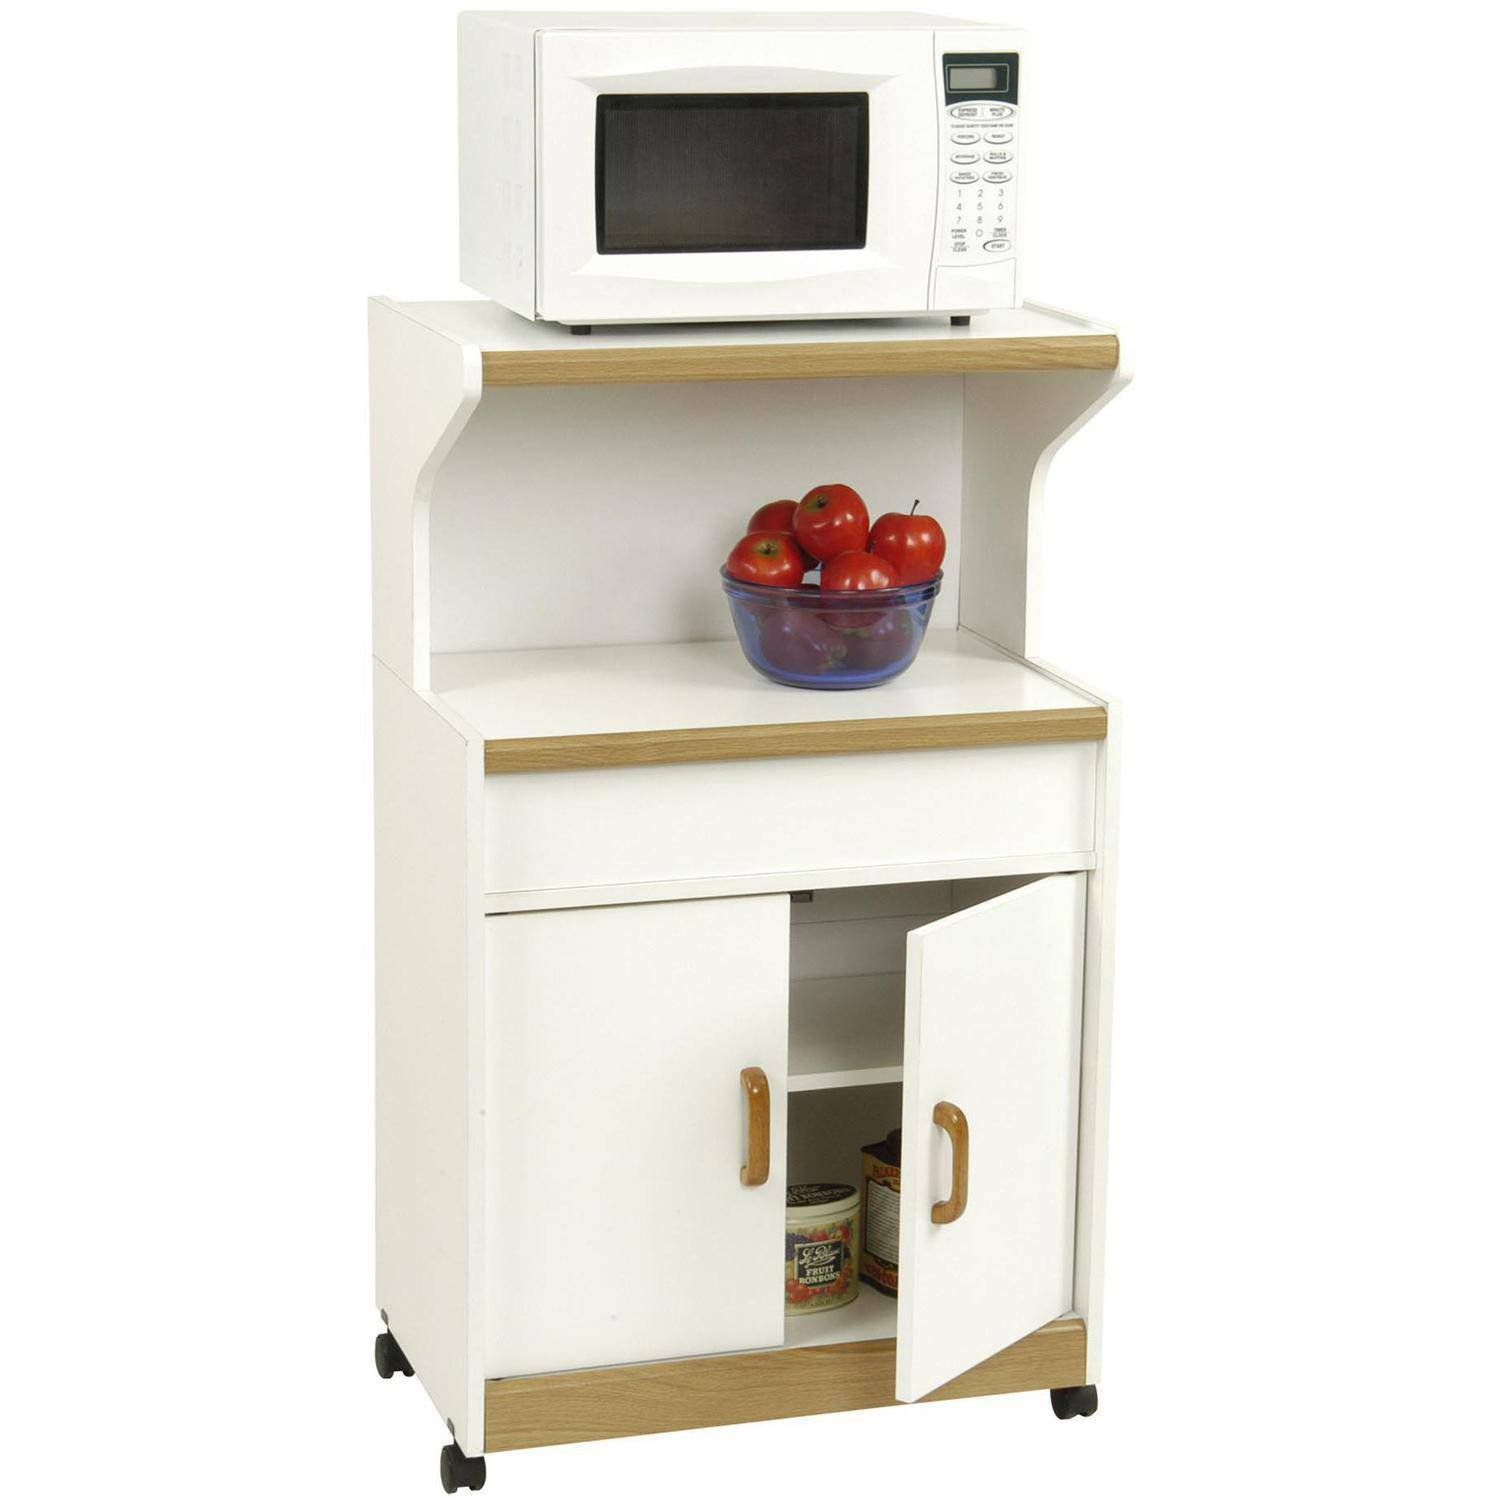 Solid Wood Microwave Cabinet With Shelves (White)